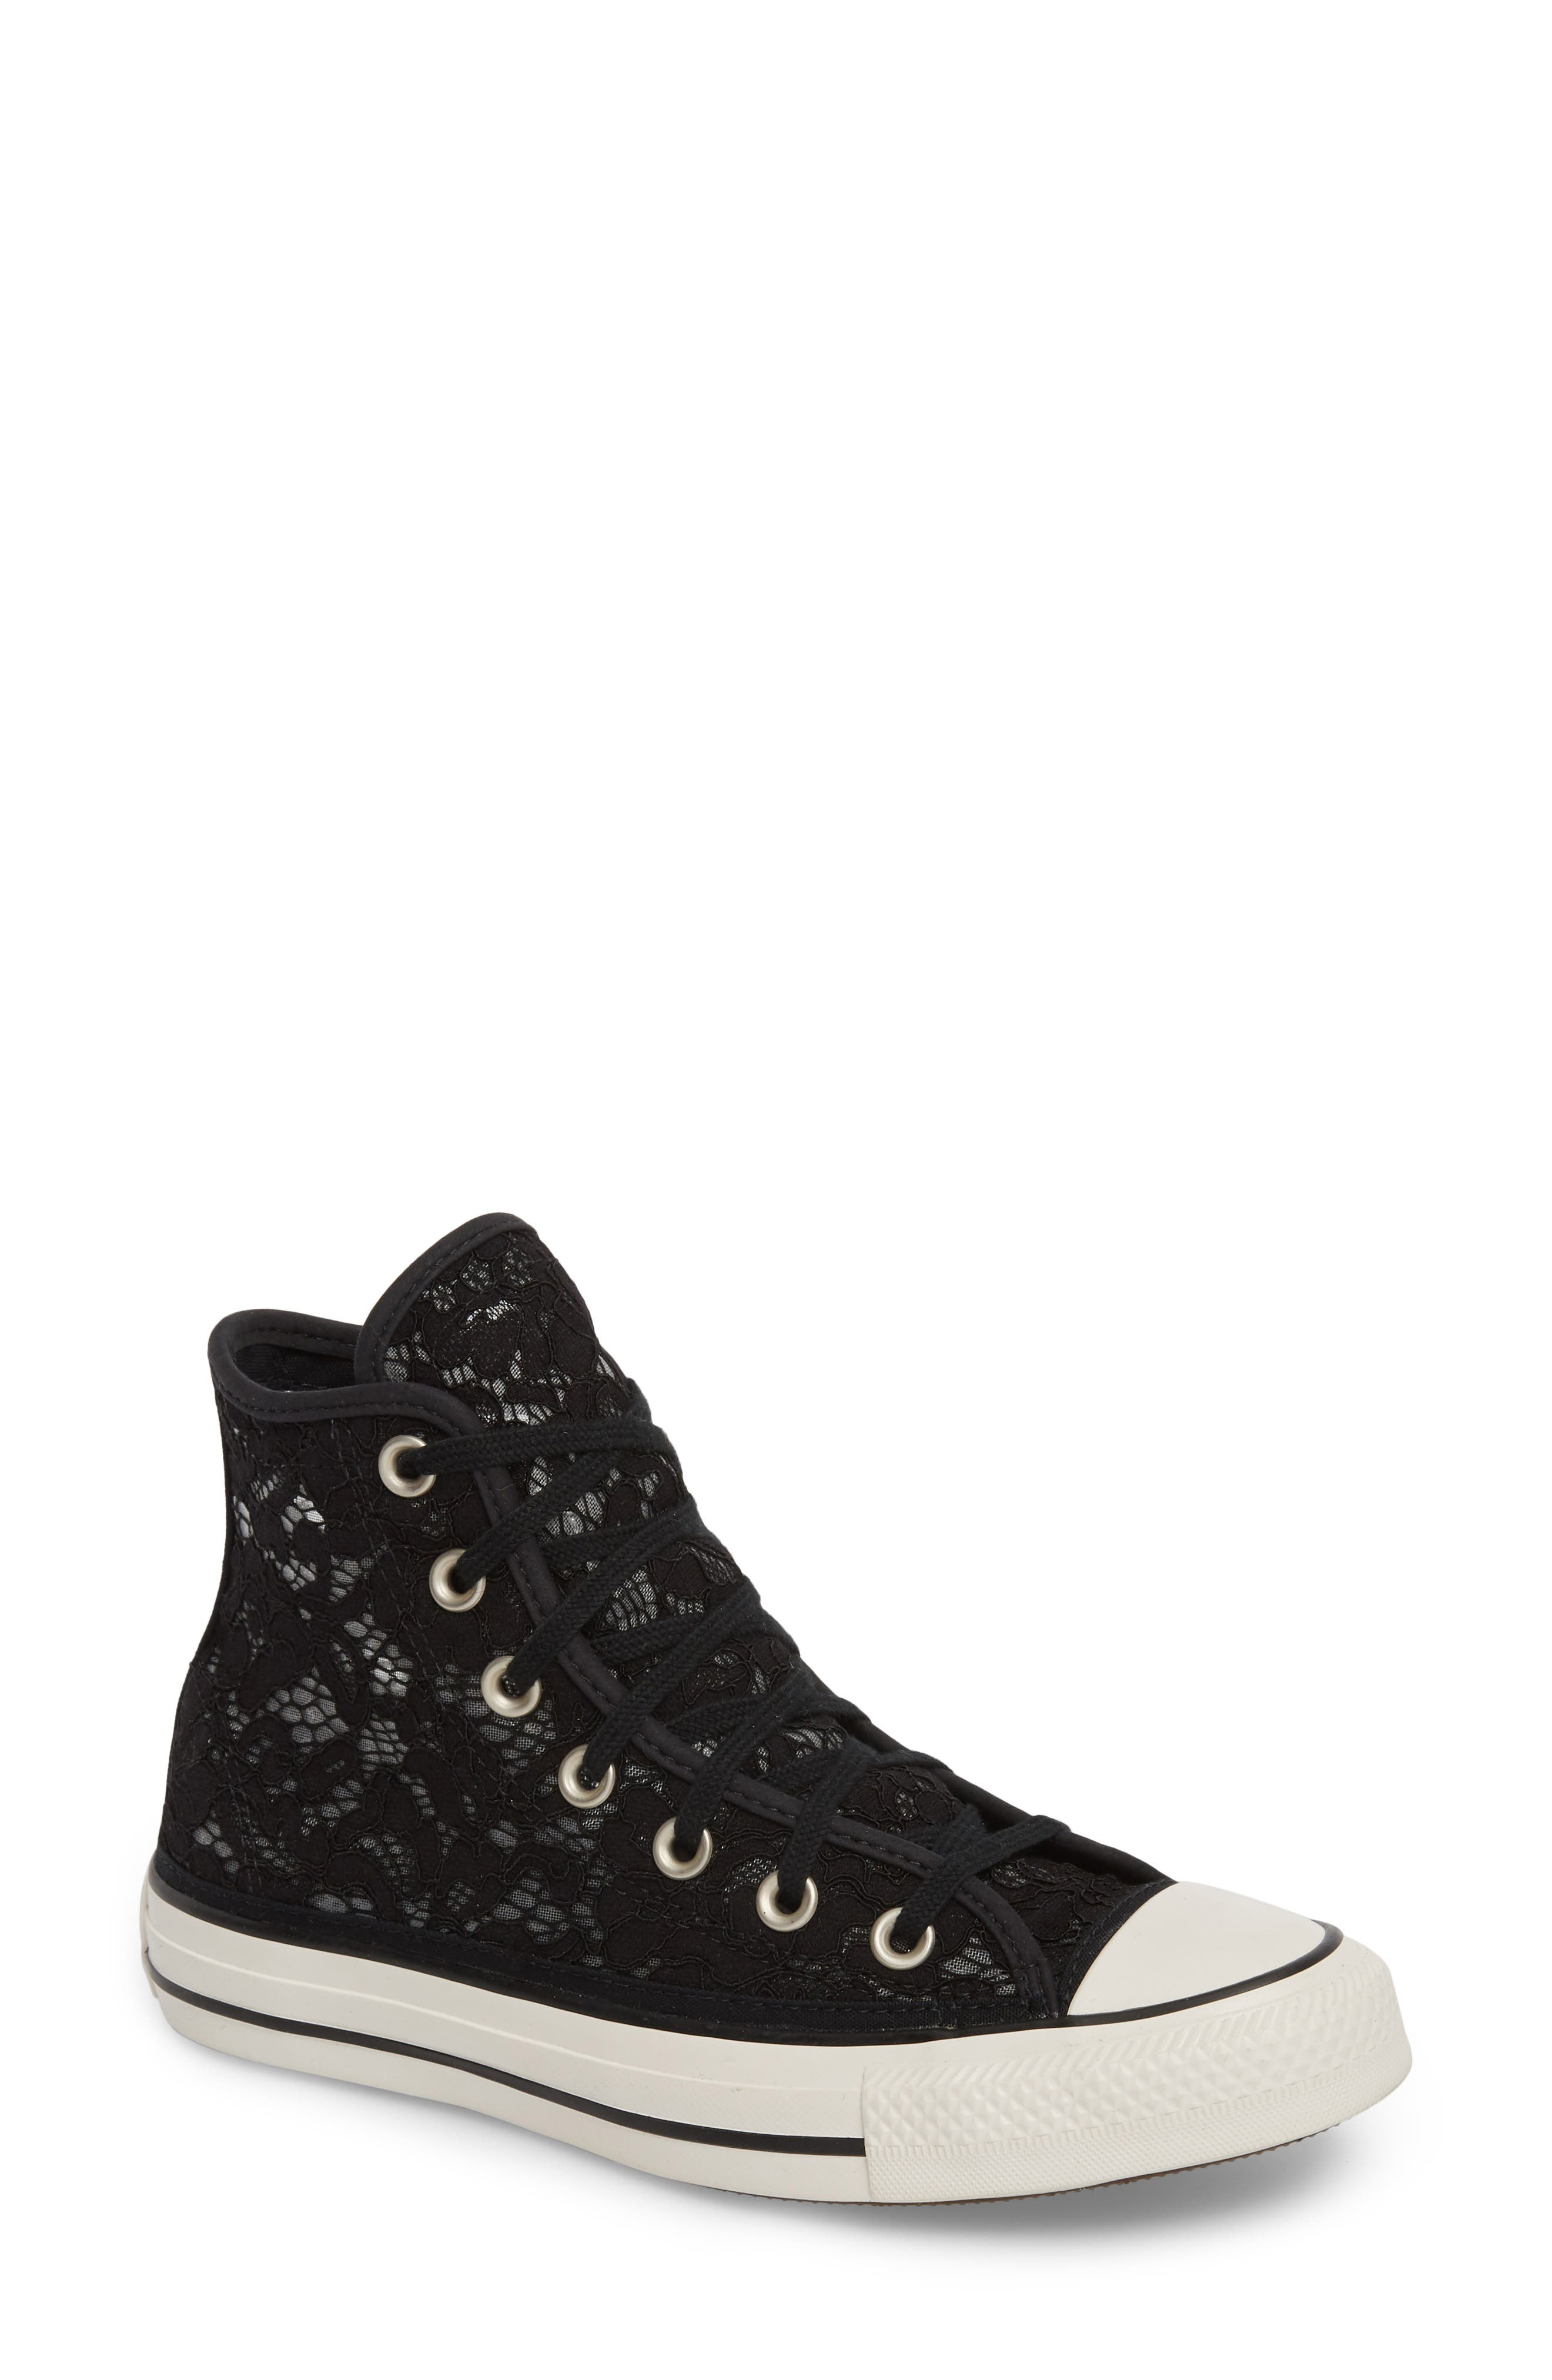 Chuck Taylor<sup>®</sup> All Star Lace High-Top Sneaker,                             Main thumbnail 1, color,                             Black/ White